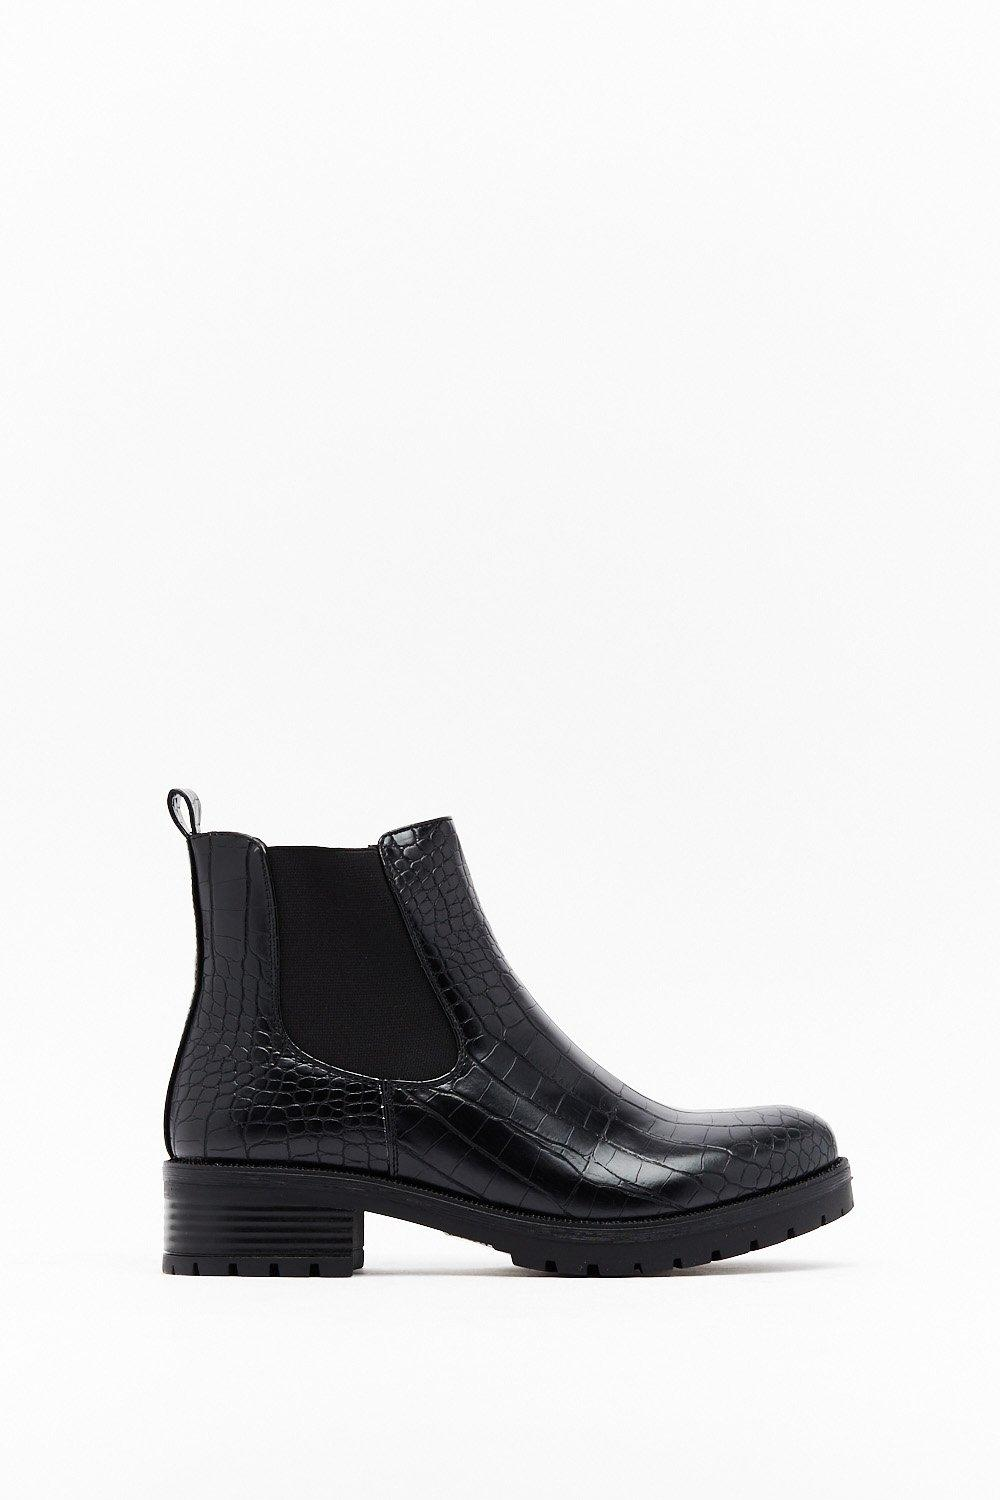 Image of Don't Croc the Boat Faux Leather Chelsea Boots